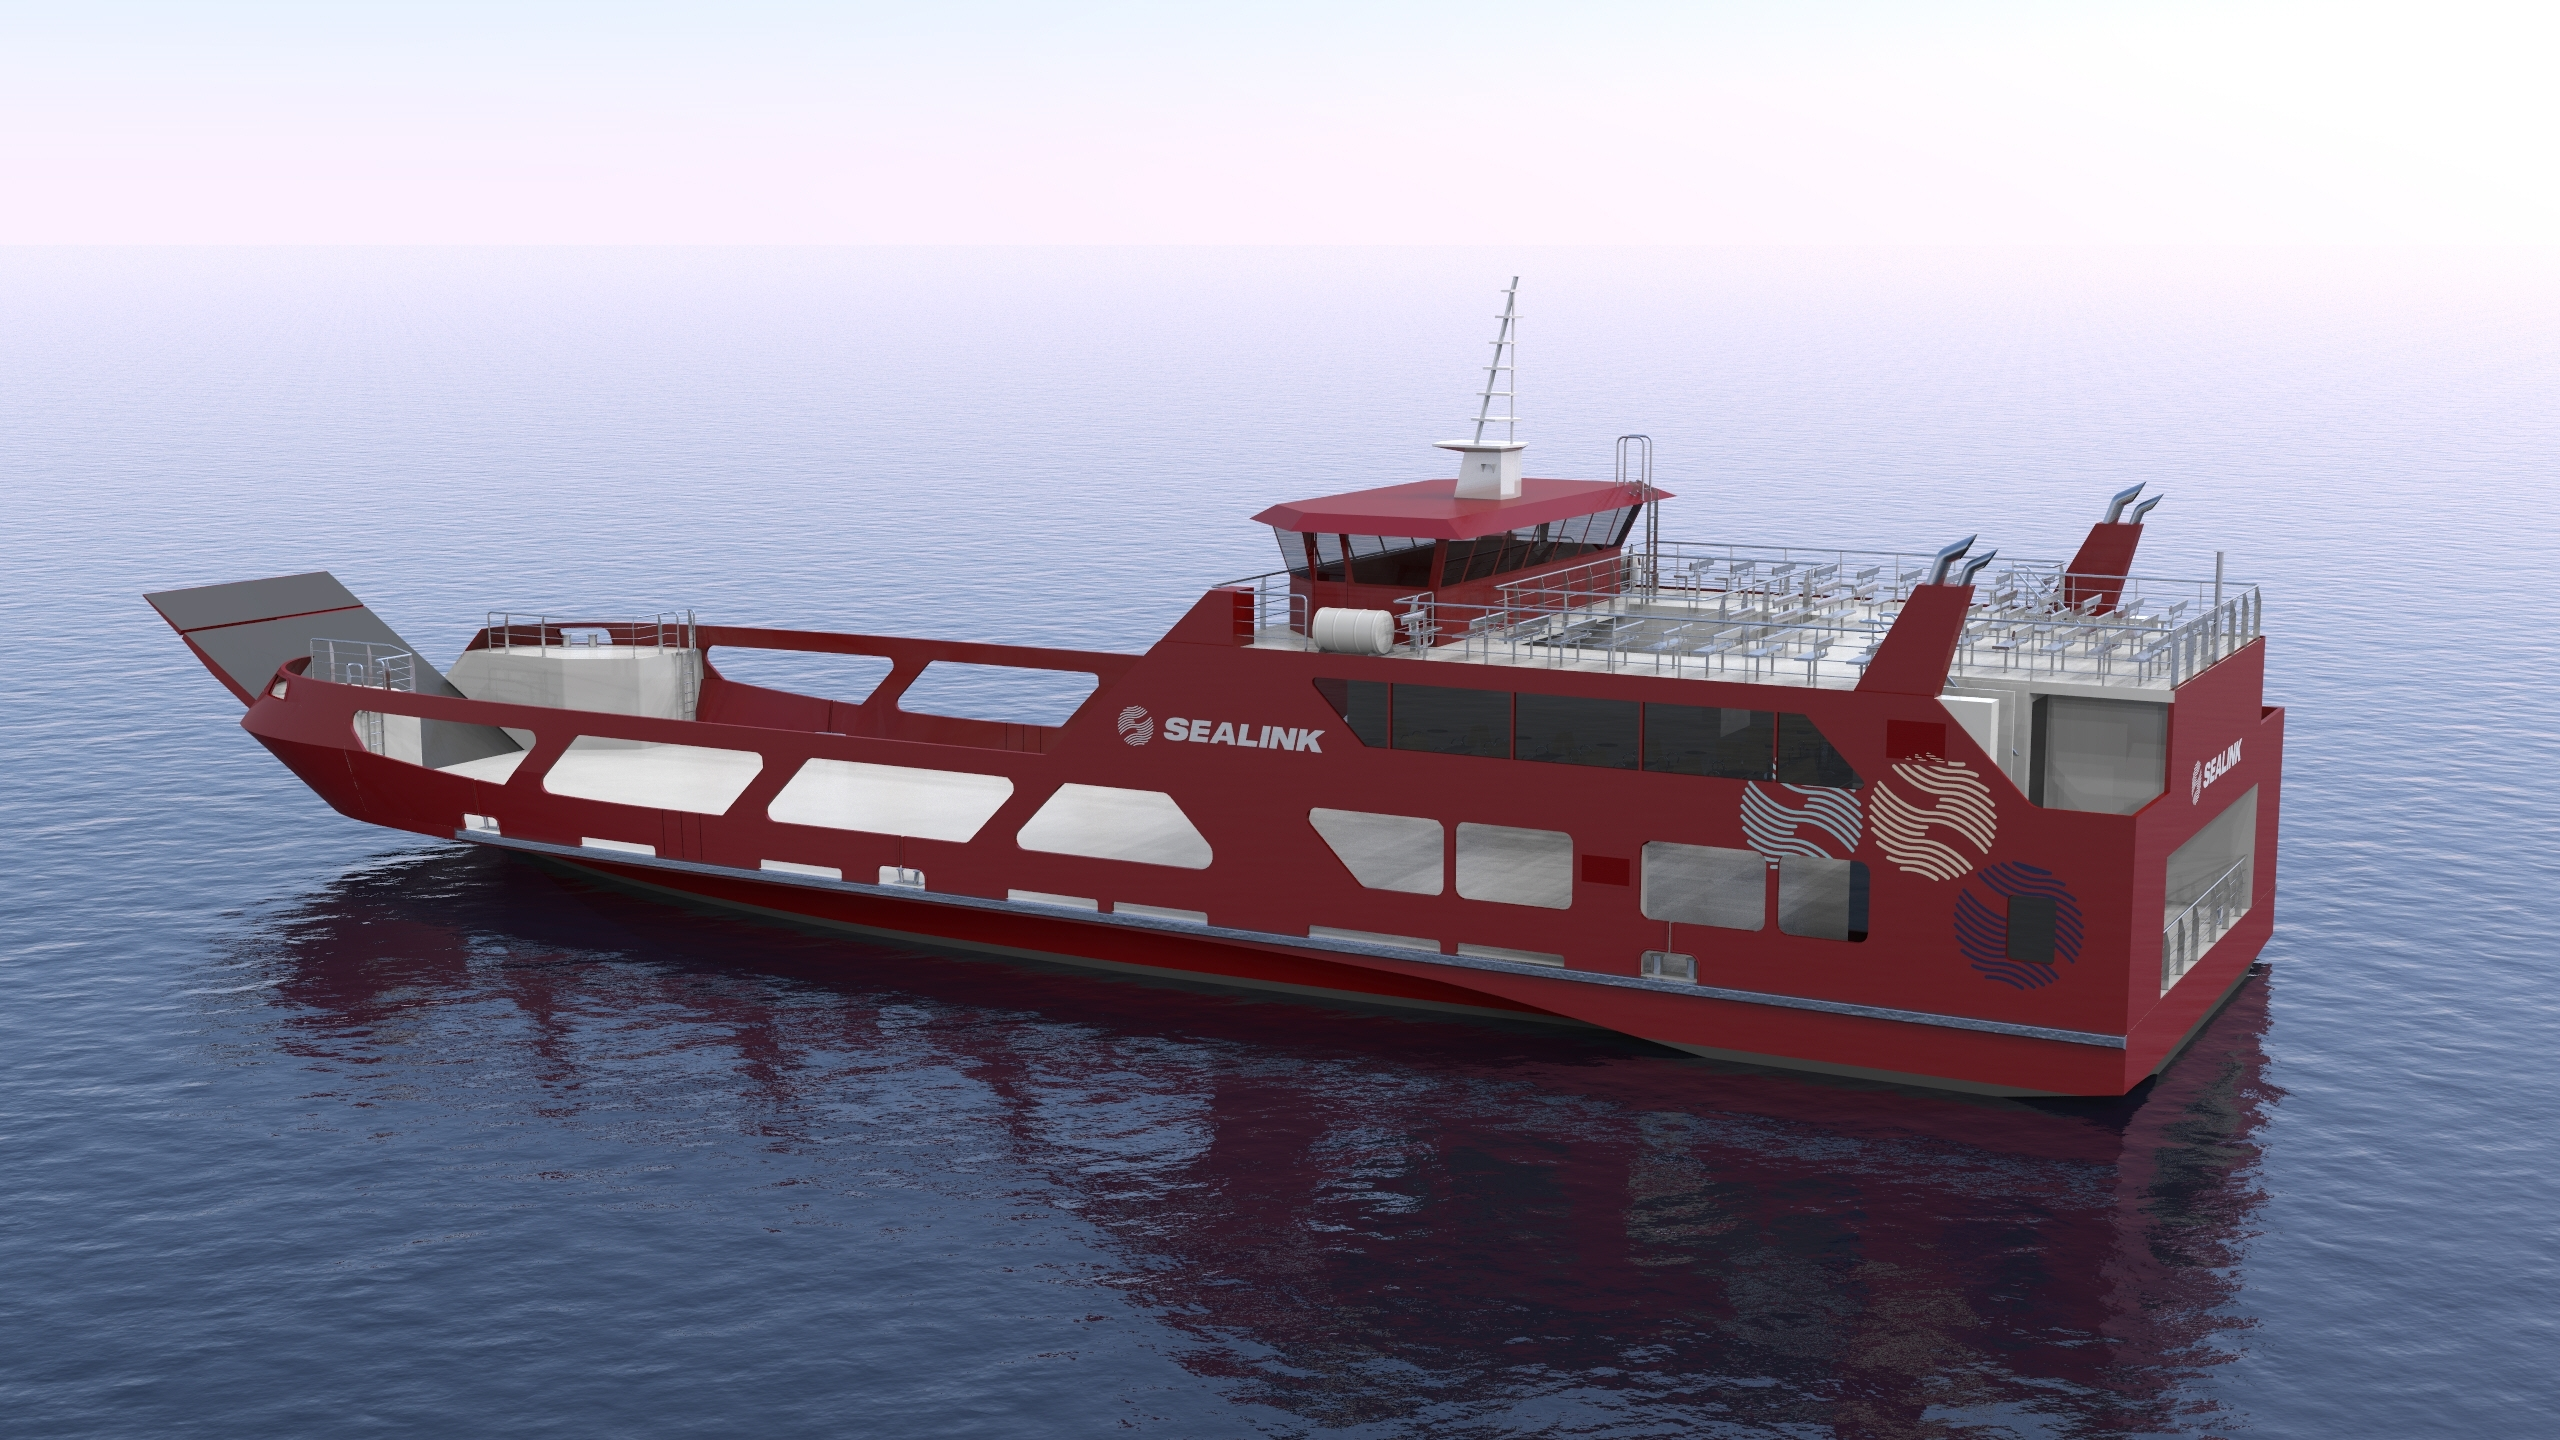 sealink ropax ferry render overall view port aft view